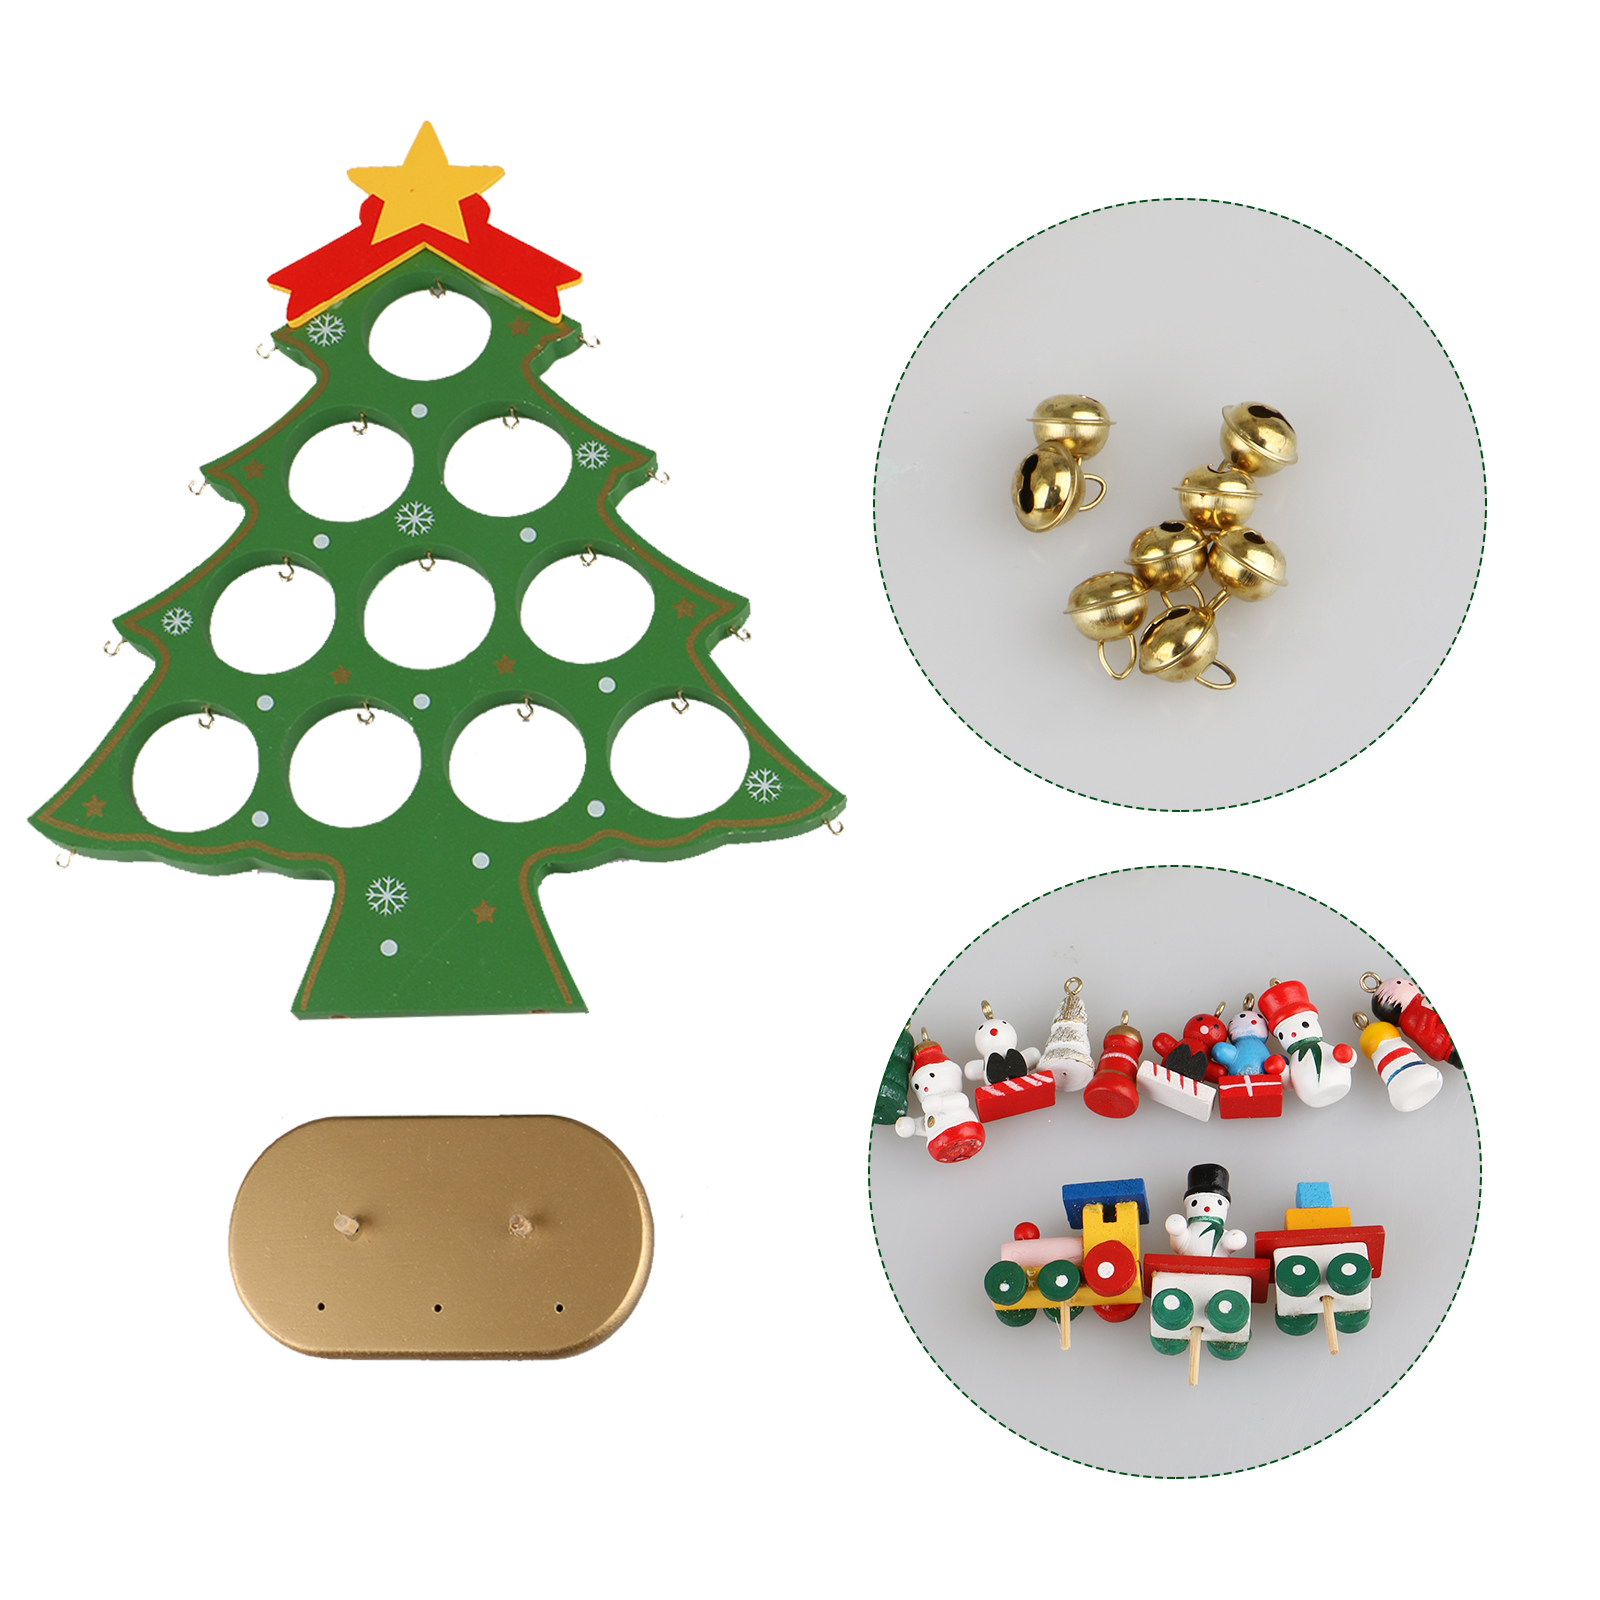 diy wooden christmas ornaments festival party xmas tree - Wooden Christmas Ornaments